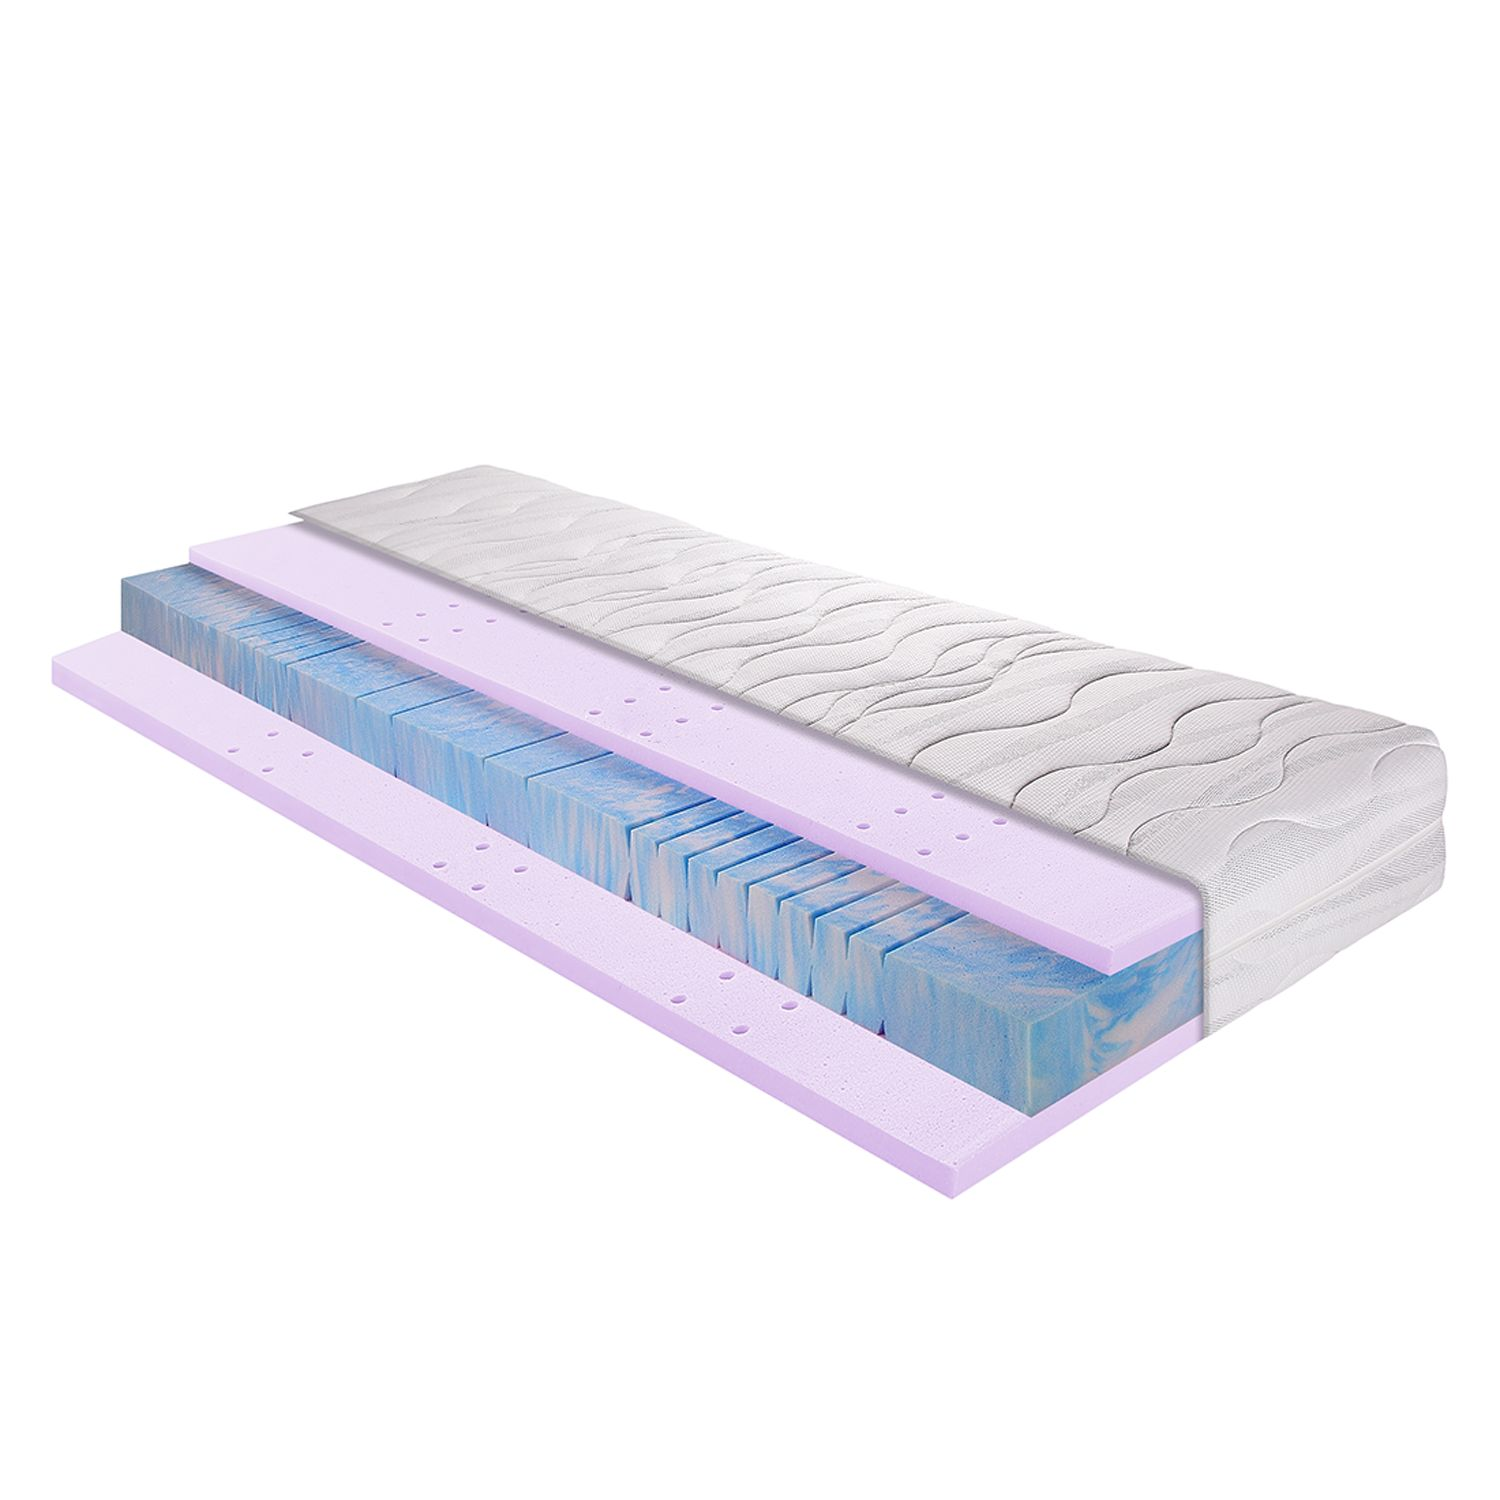 Materasso in schiuma e gel Sleep gel 3, Breckle